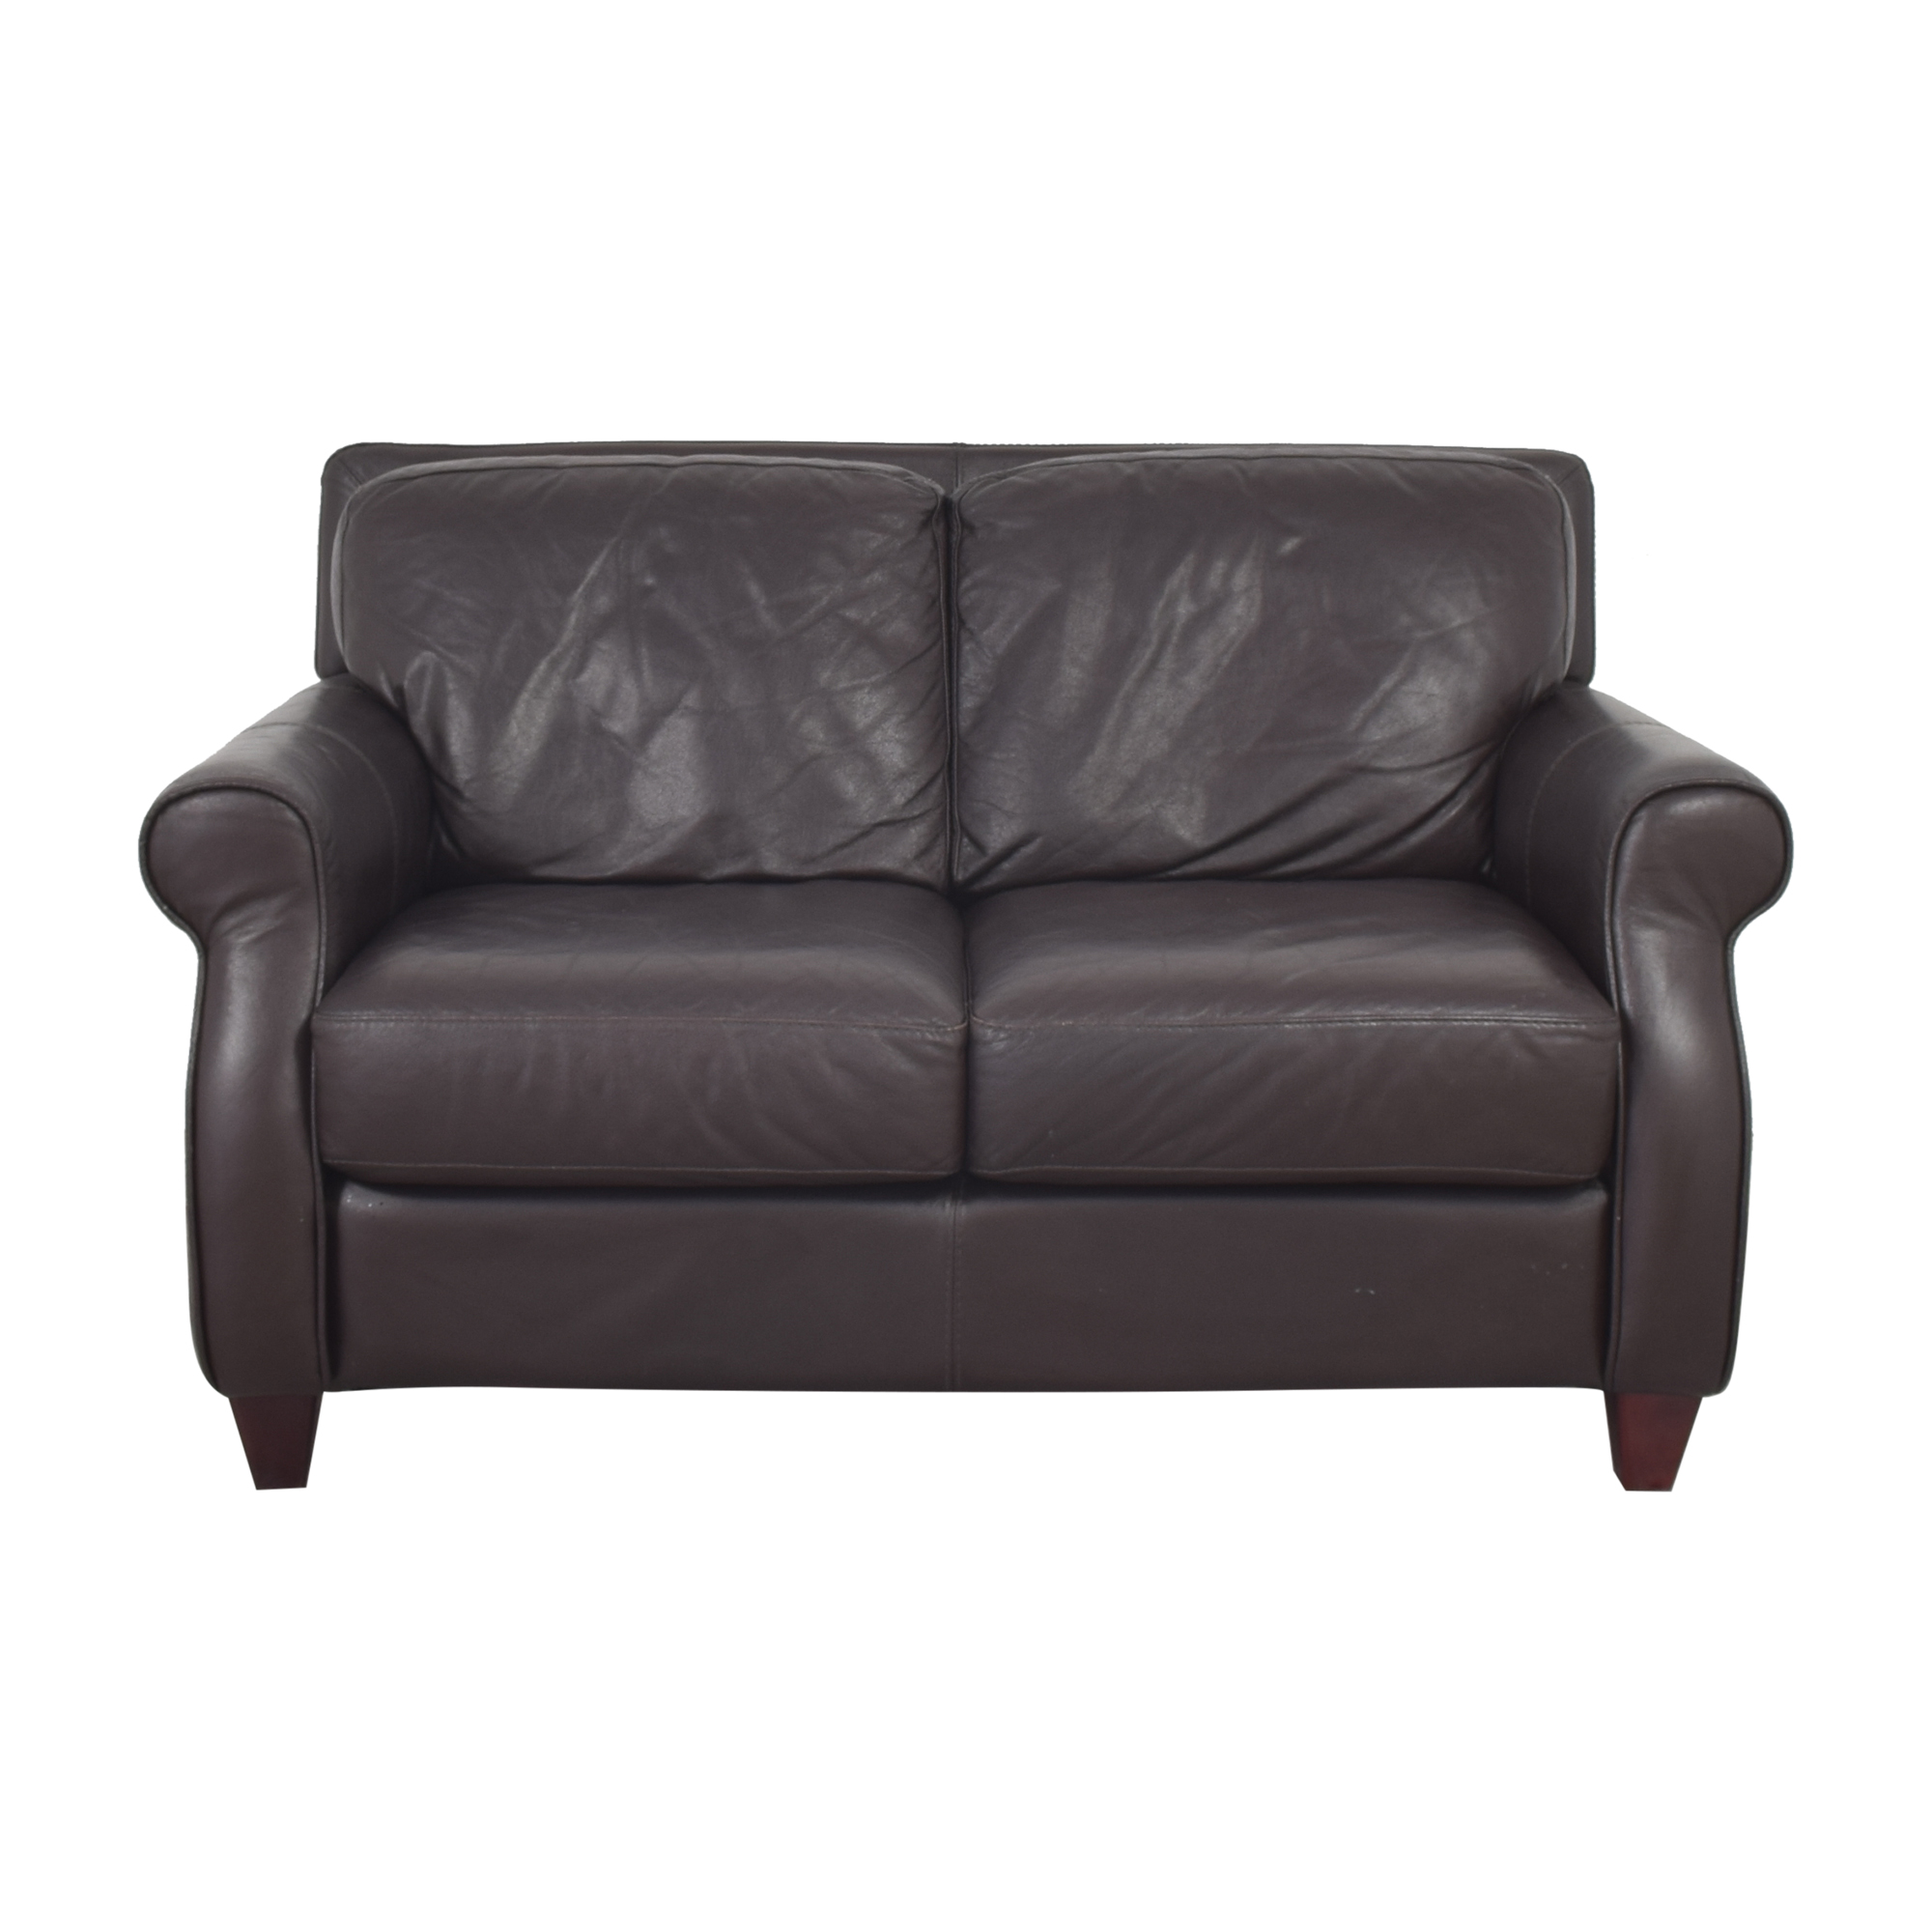 shop Raymour & Flanigan Roll Arm Loveseat Raymour & Flanigan Sofas